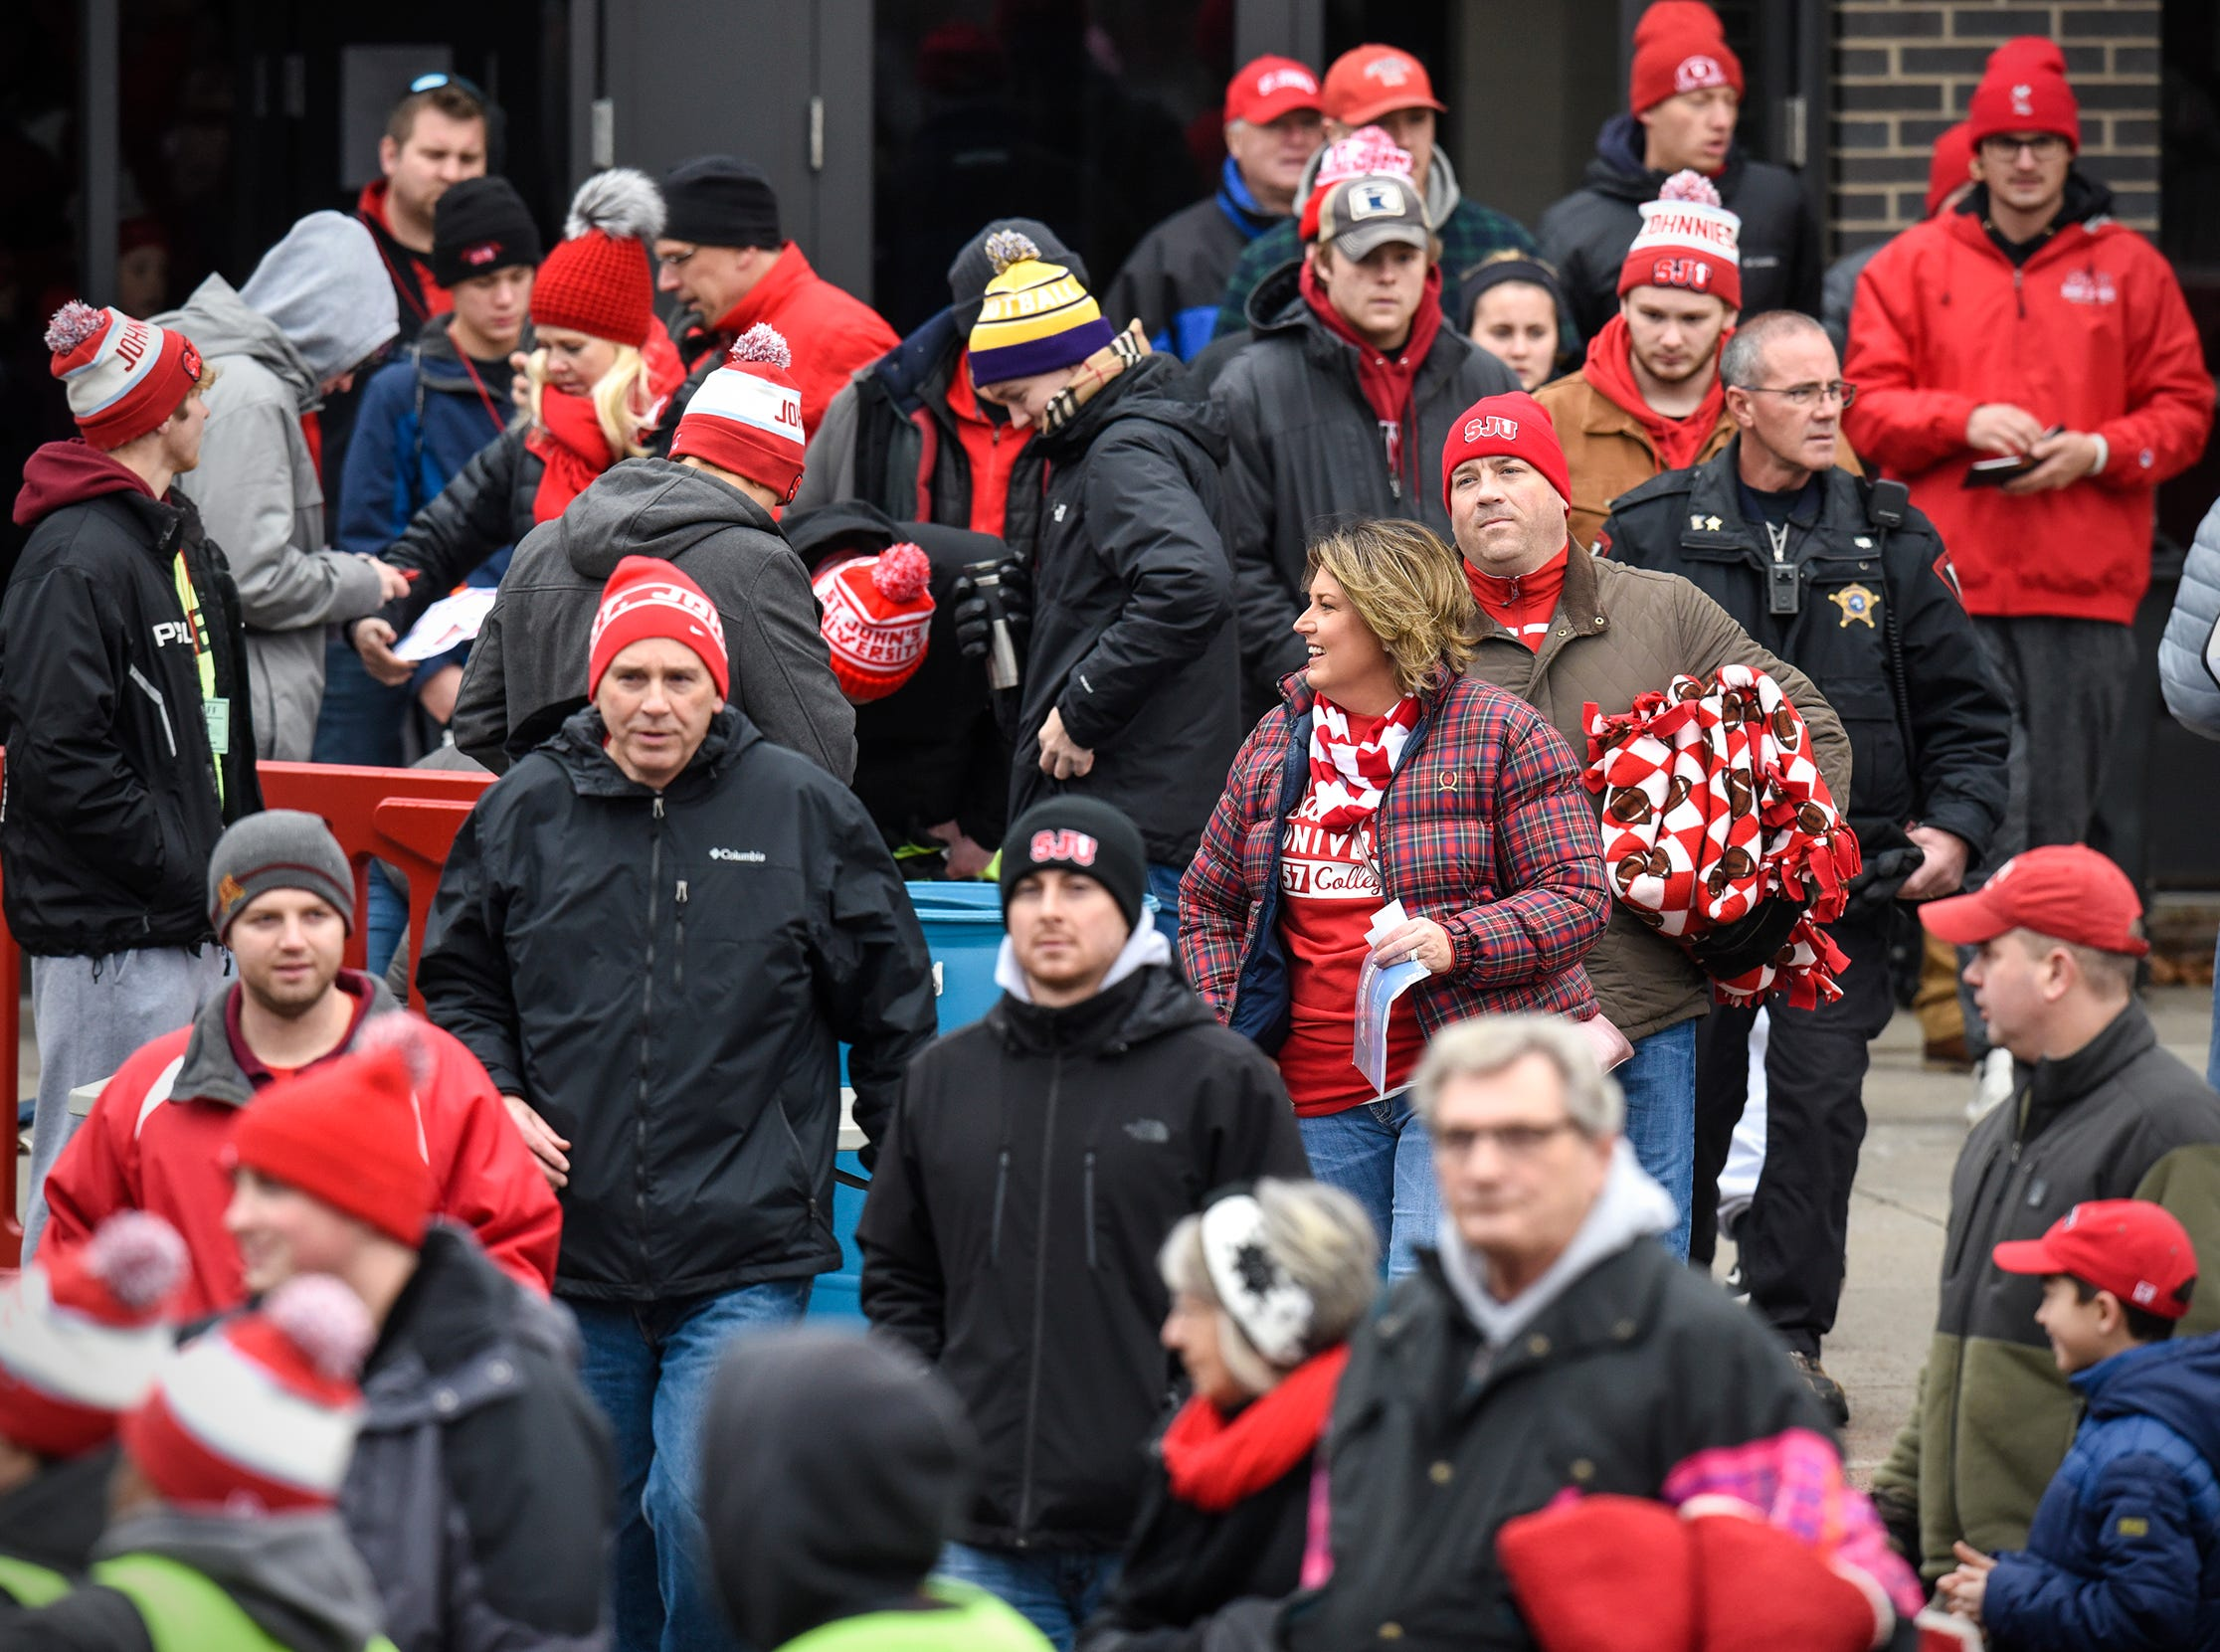 Fans enter the stadium for Saturday's playoff game against Whitworth at Clemens Stadium in Collegeville.